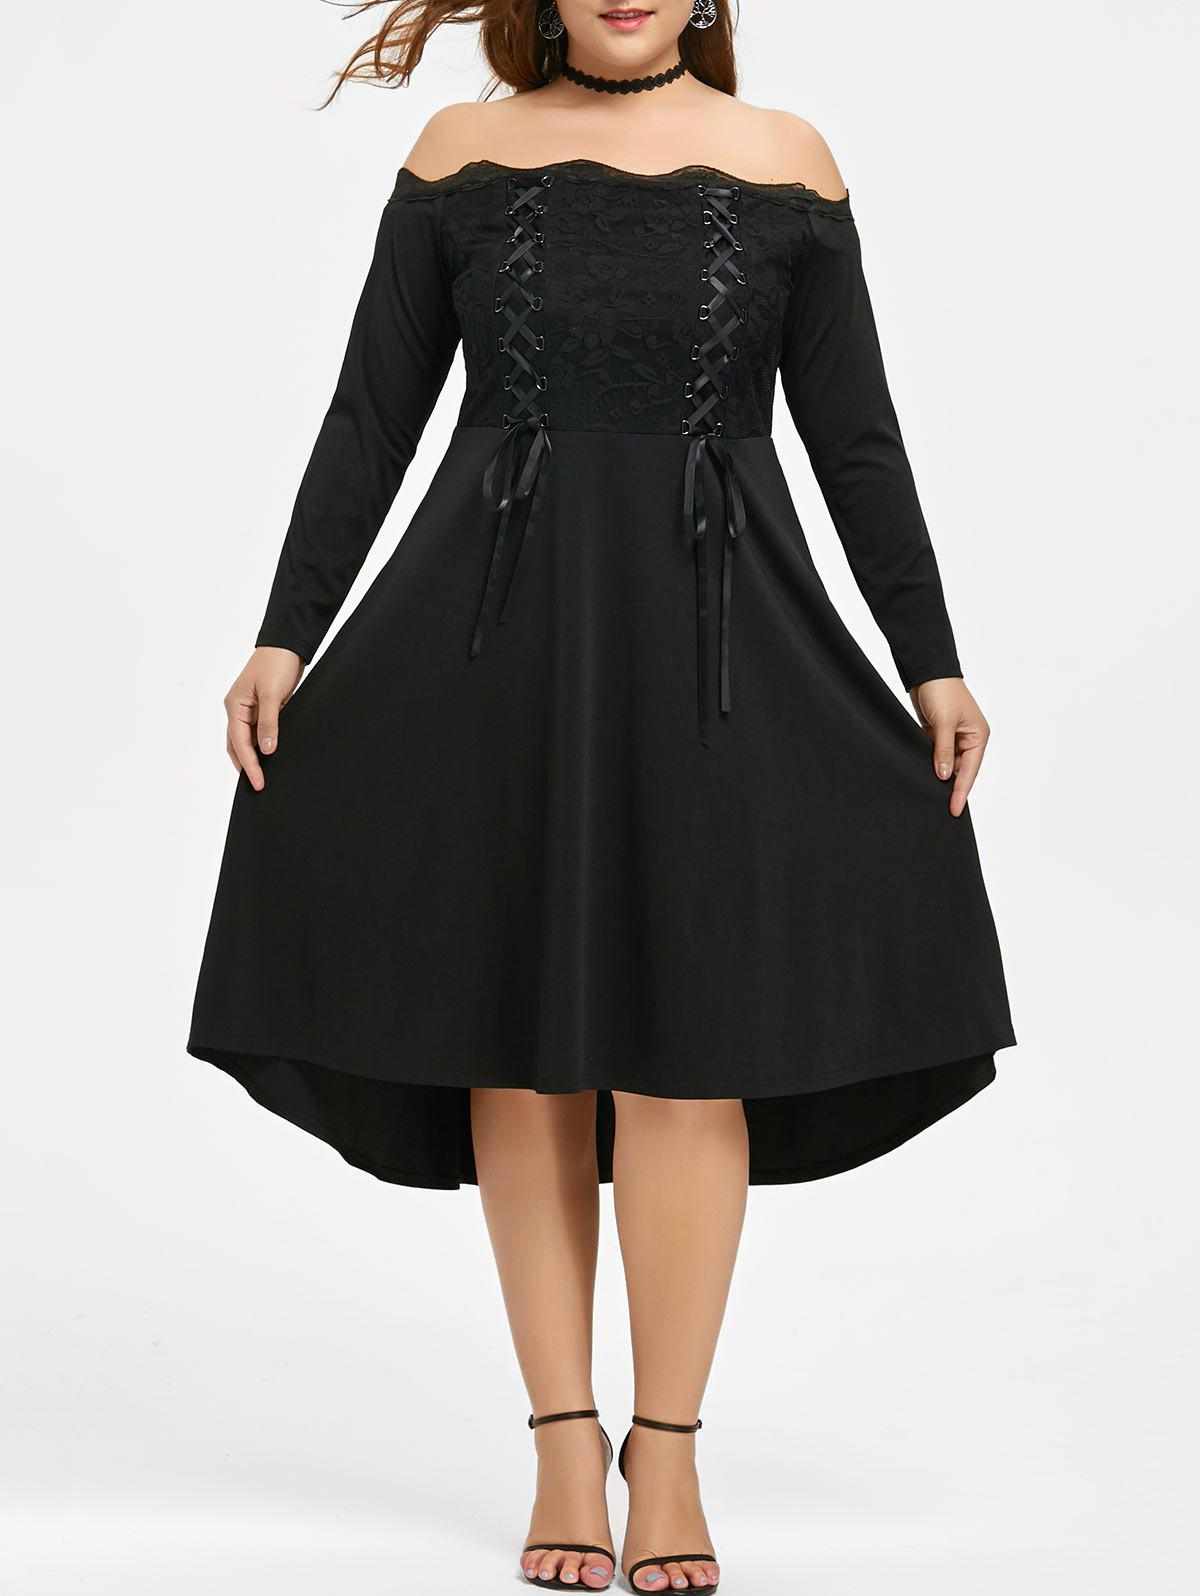 Lace Trim Plus Size Lace-up Off Shoulder DressWOMEN<br><br>Size: XL; Color: BLACK; Style: Cute; Material: Polyester,Spandex; Silhouette: Asymmetrical; Dresses Length: Knee-Length; Neckline: Off The Shoulder; Sleeve Length: Long Sleeves; Embellishment: Lace; Pattern Type: Solid; With Belt: No; Season: Fall,Spring; Weight: 0.5240kg; Package Contents: 1 x Dress;